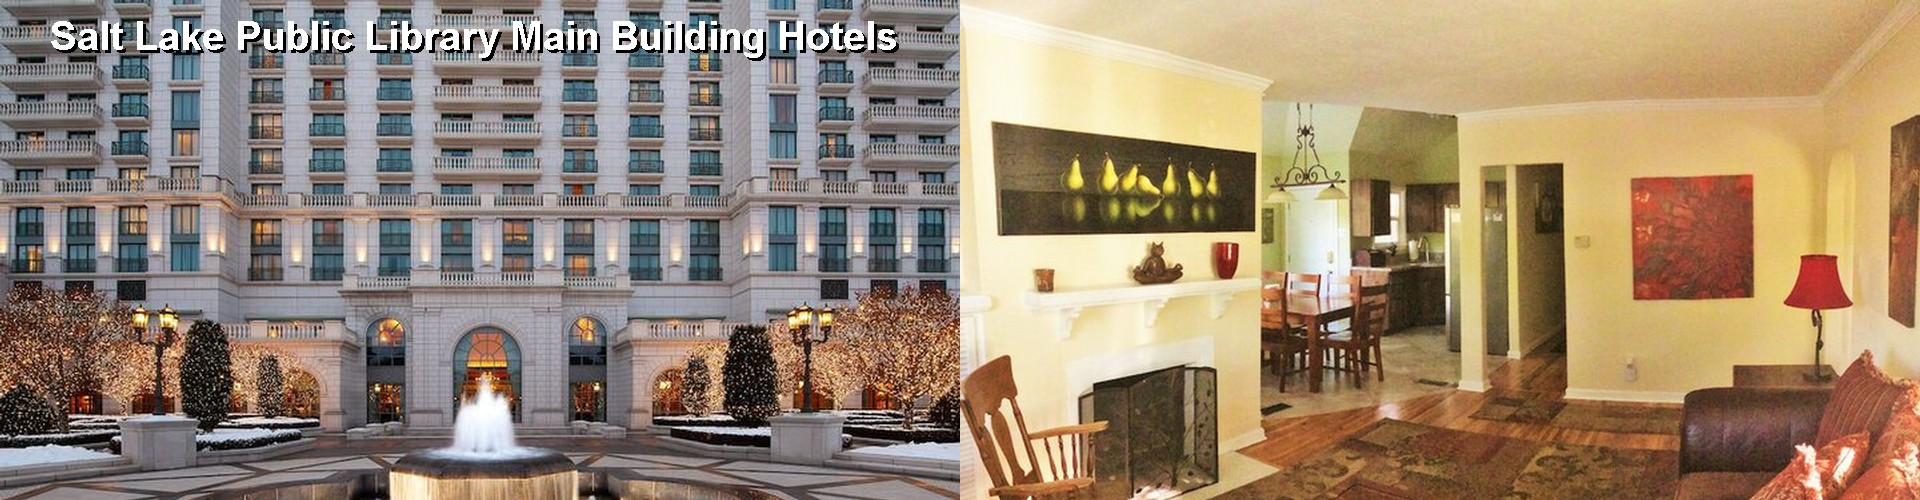 5 Best Hotels near Salt Lake Public Library Main Building